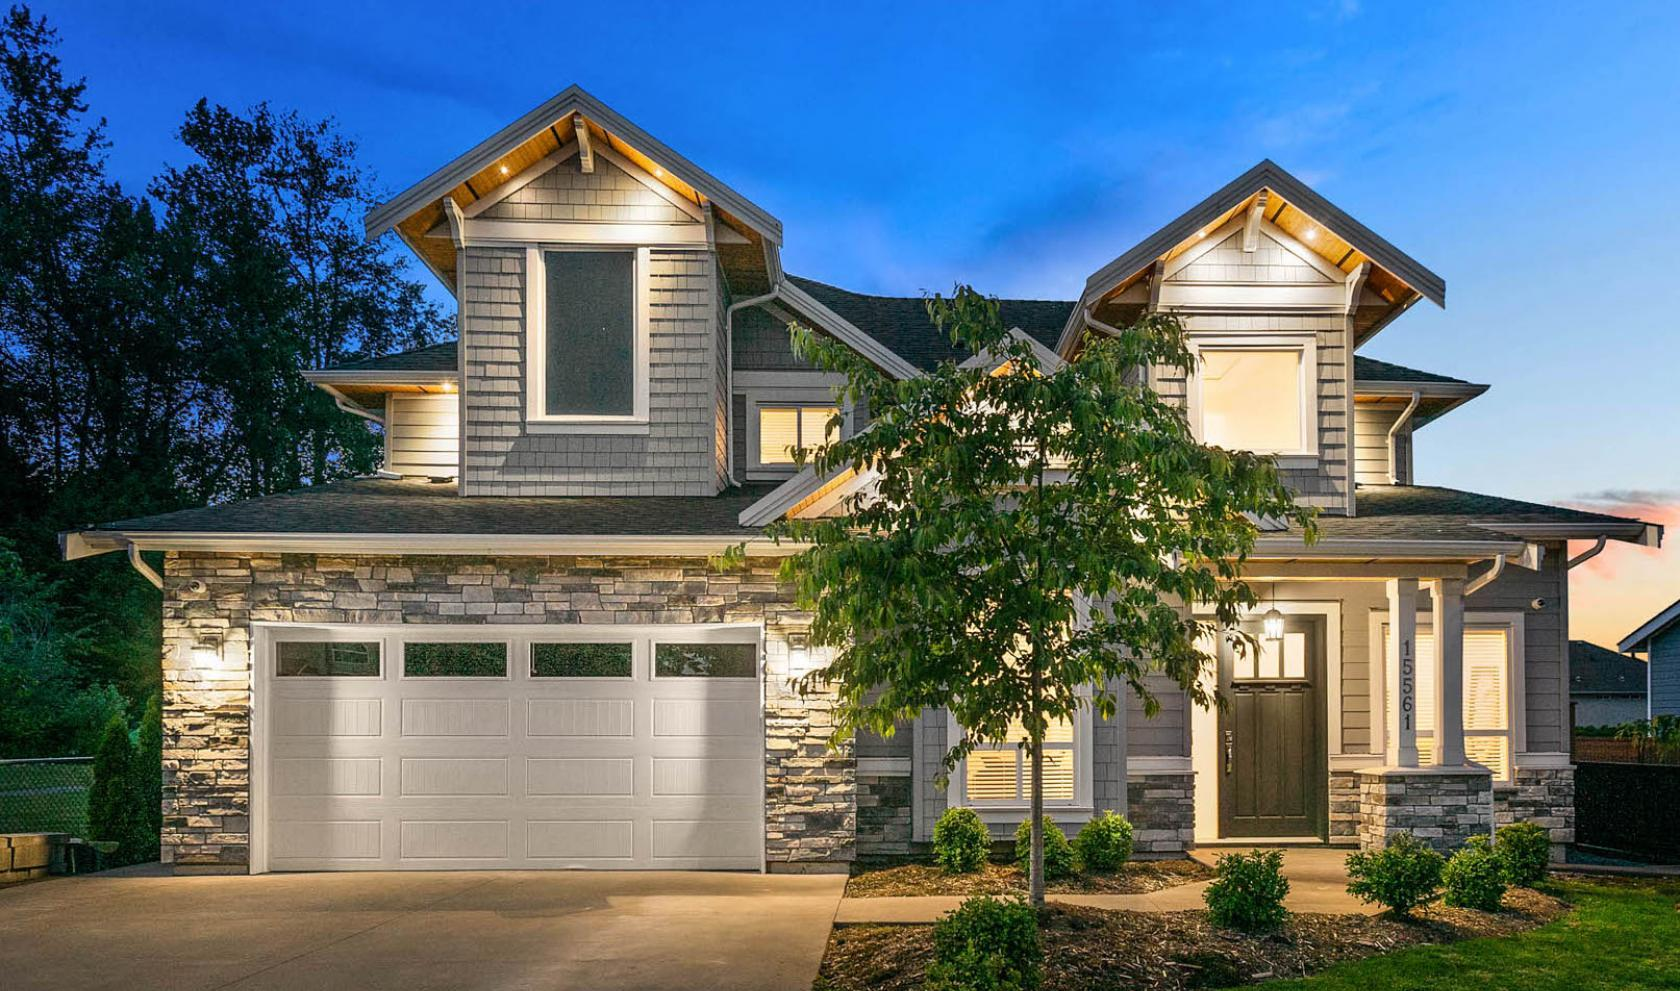 15561 20 Avenue, King George Corridor, South Surrey White Rock